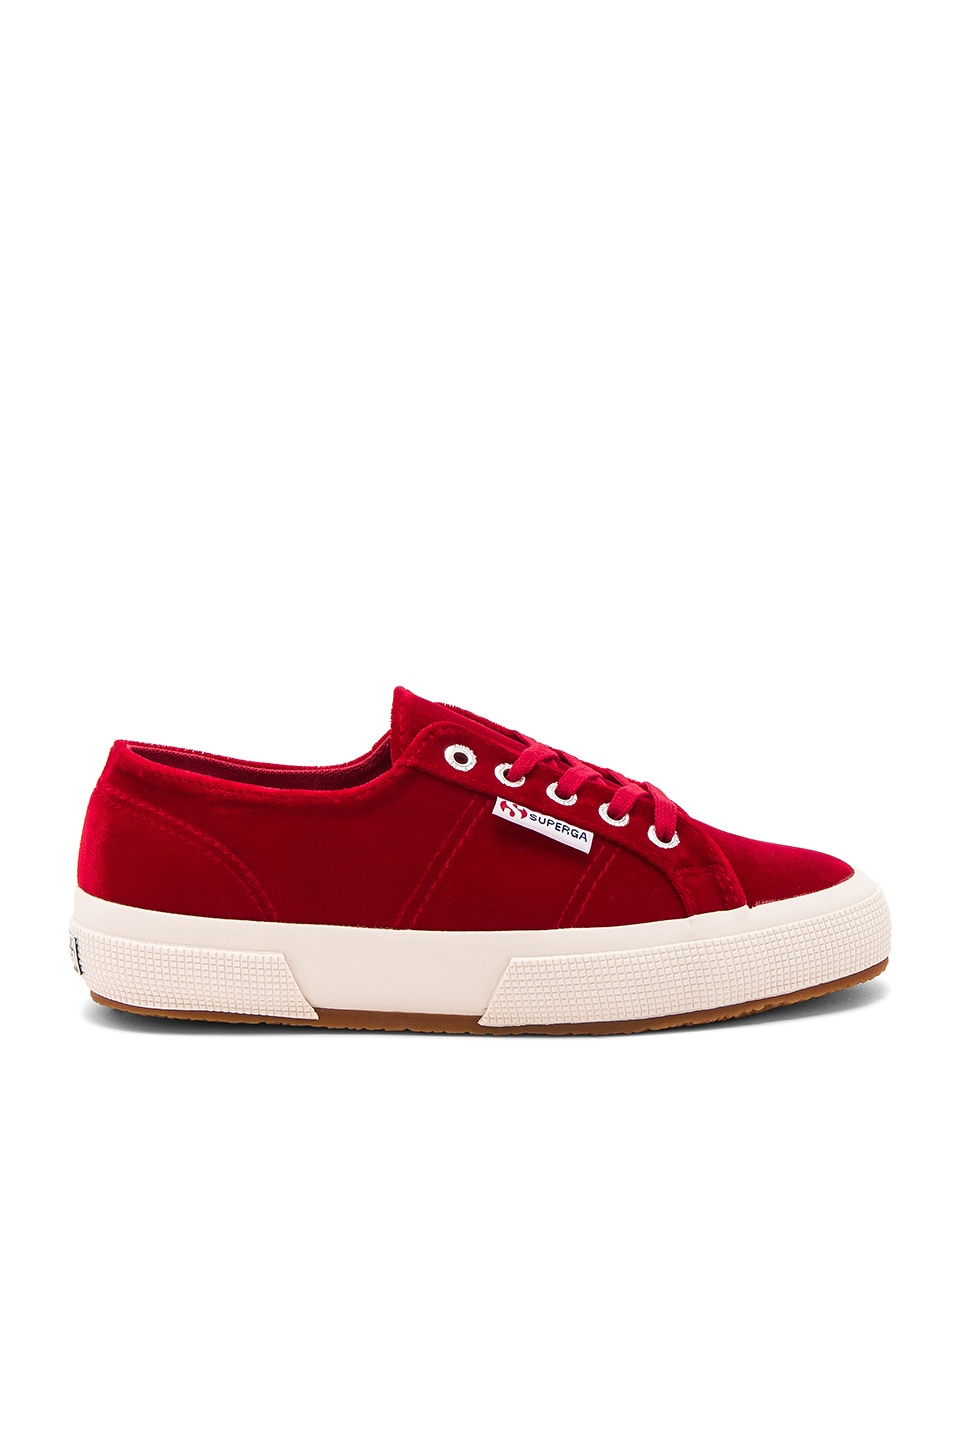 2750 Velvet Sneaker by Superga